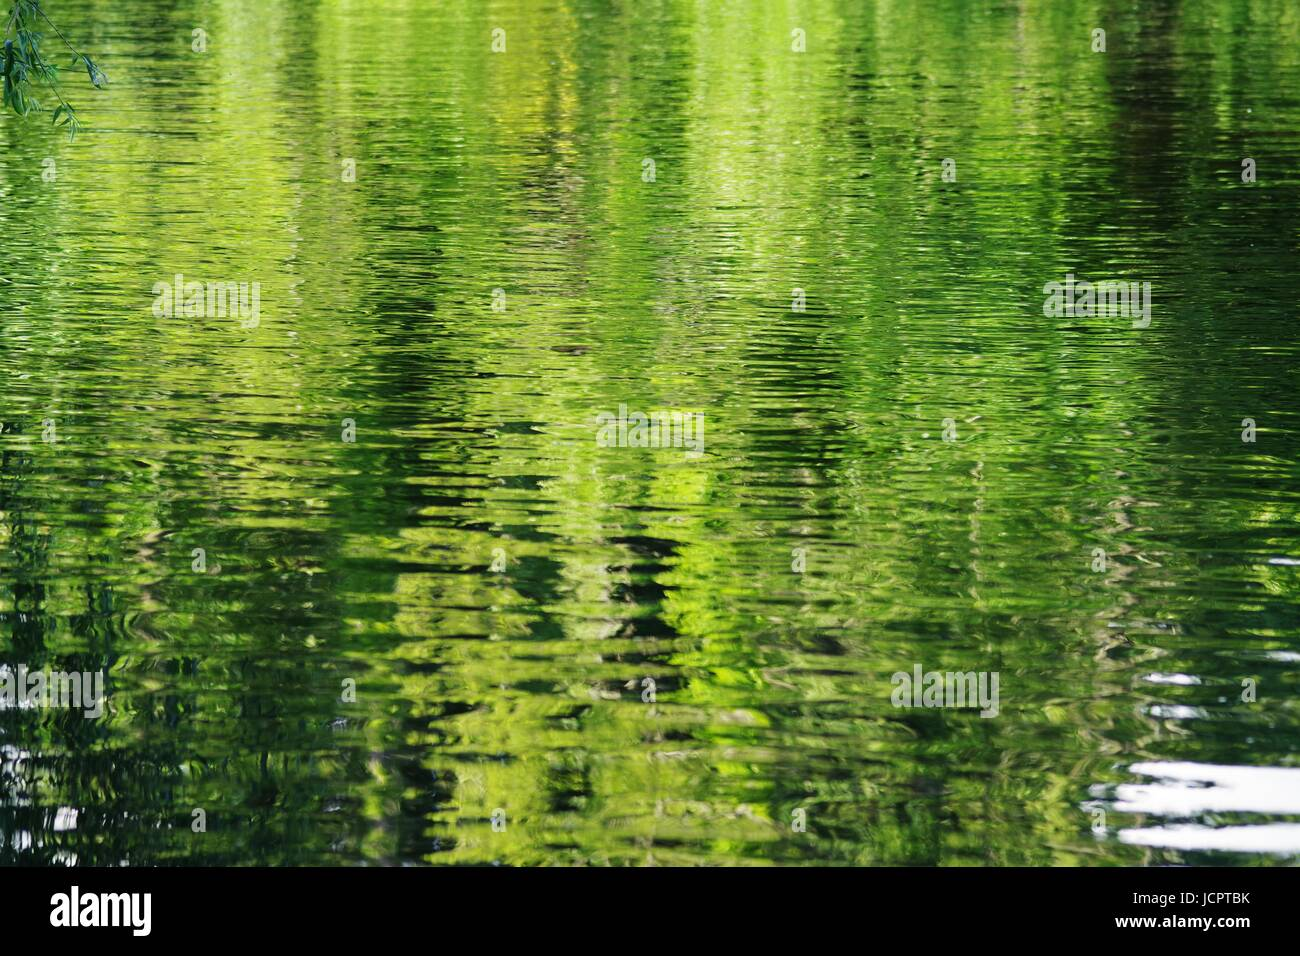 Reflection of Summer Foliage on the Rippled Water of the River Exe. Devon, UK. June, 2017. - Stock Image